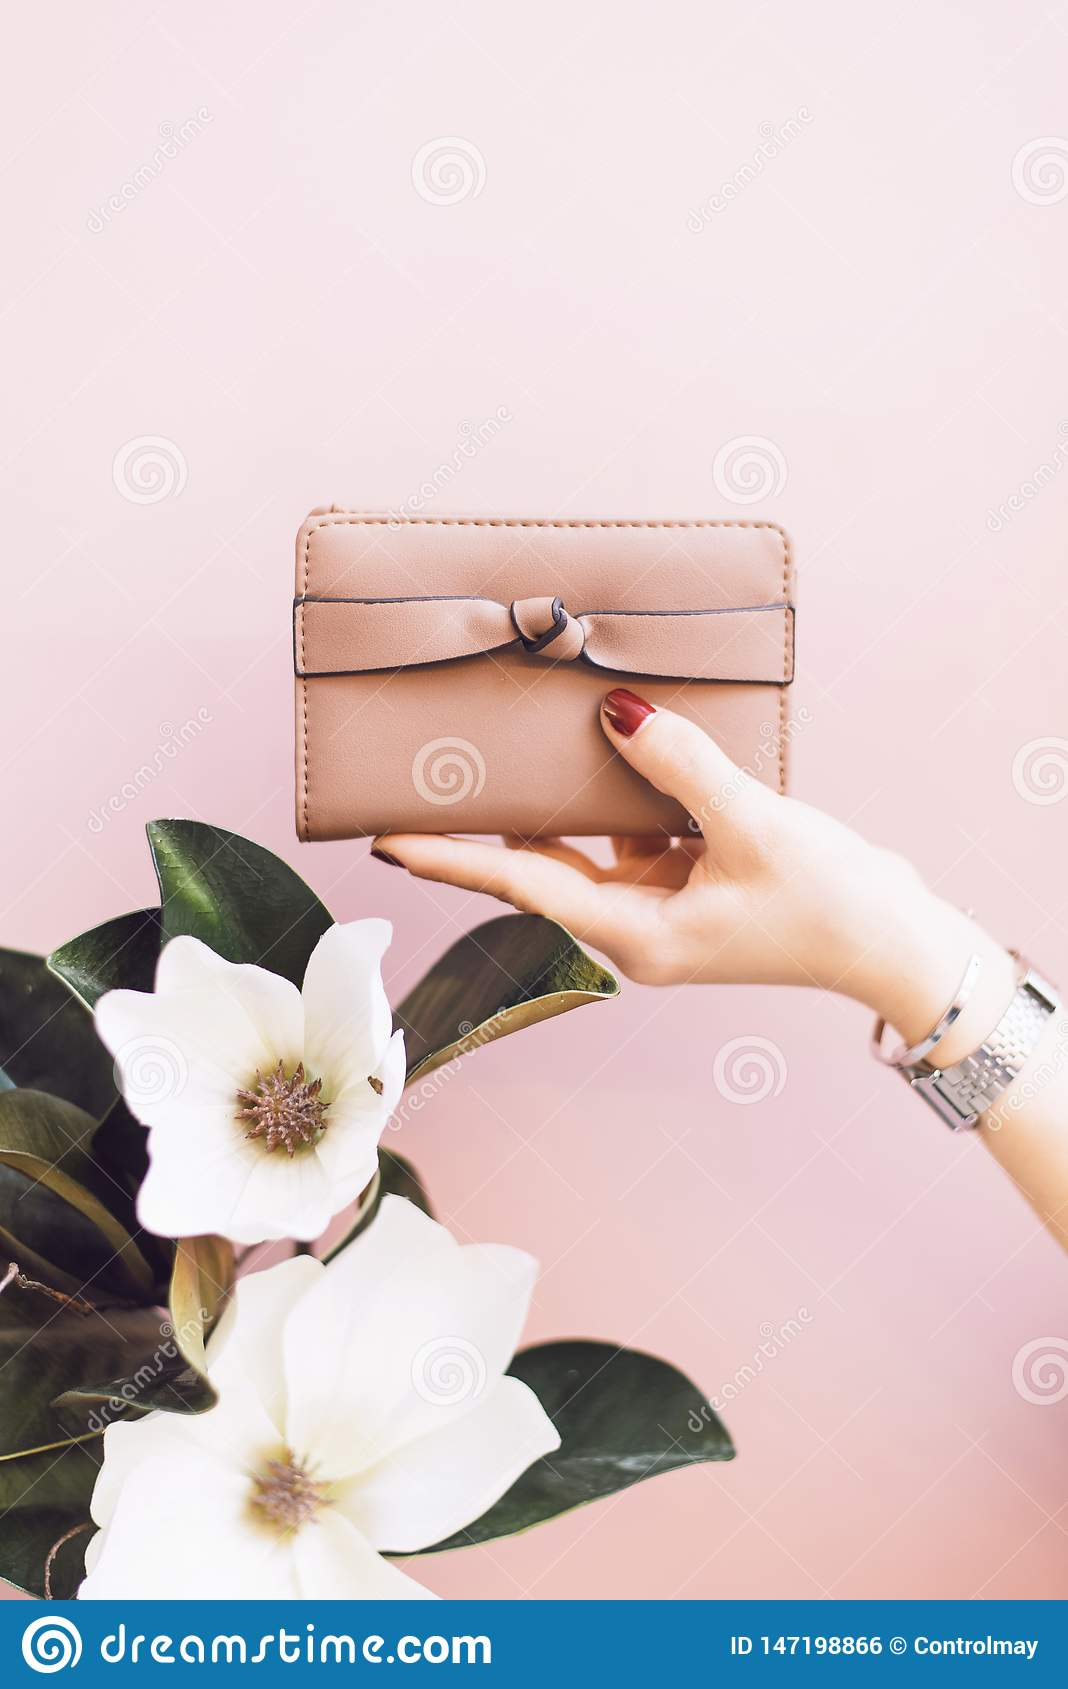 Girl holding a pink wallet on a gentle pastel background with a flower.